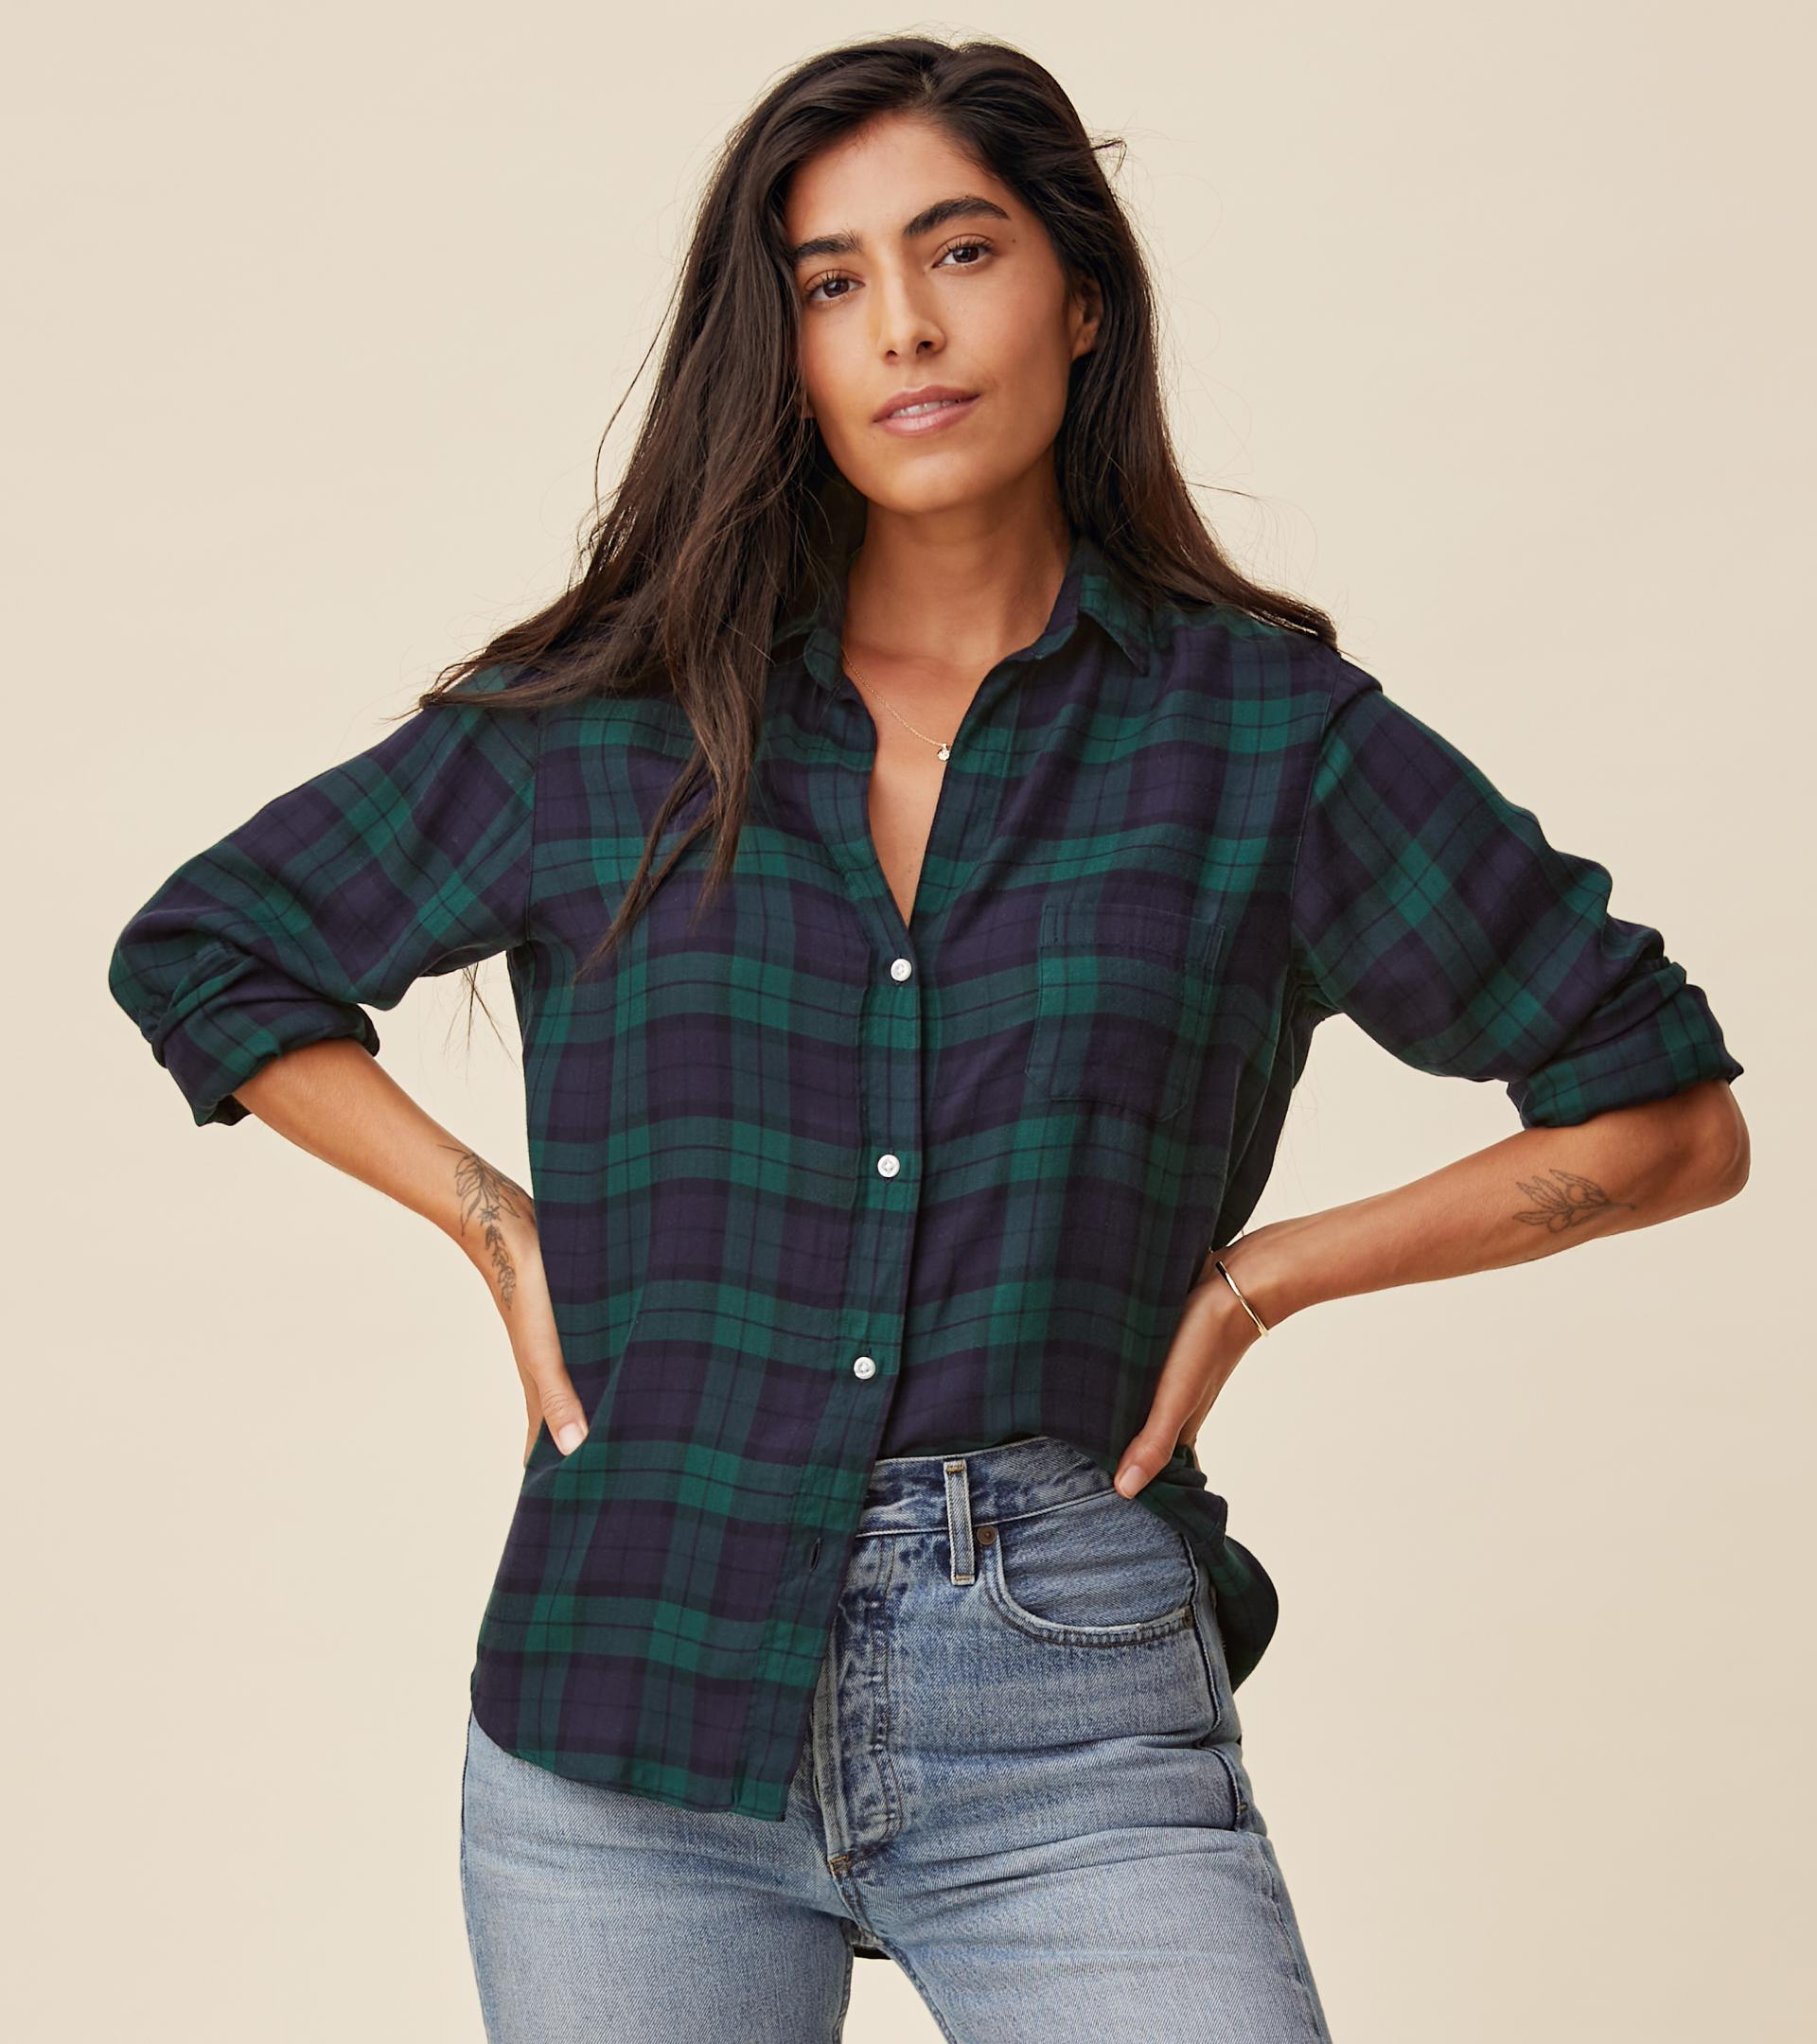 The Hero Navy with Green Plaid, Liquid Flannel